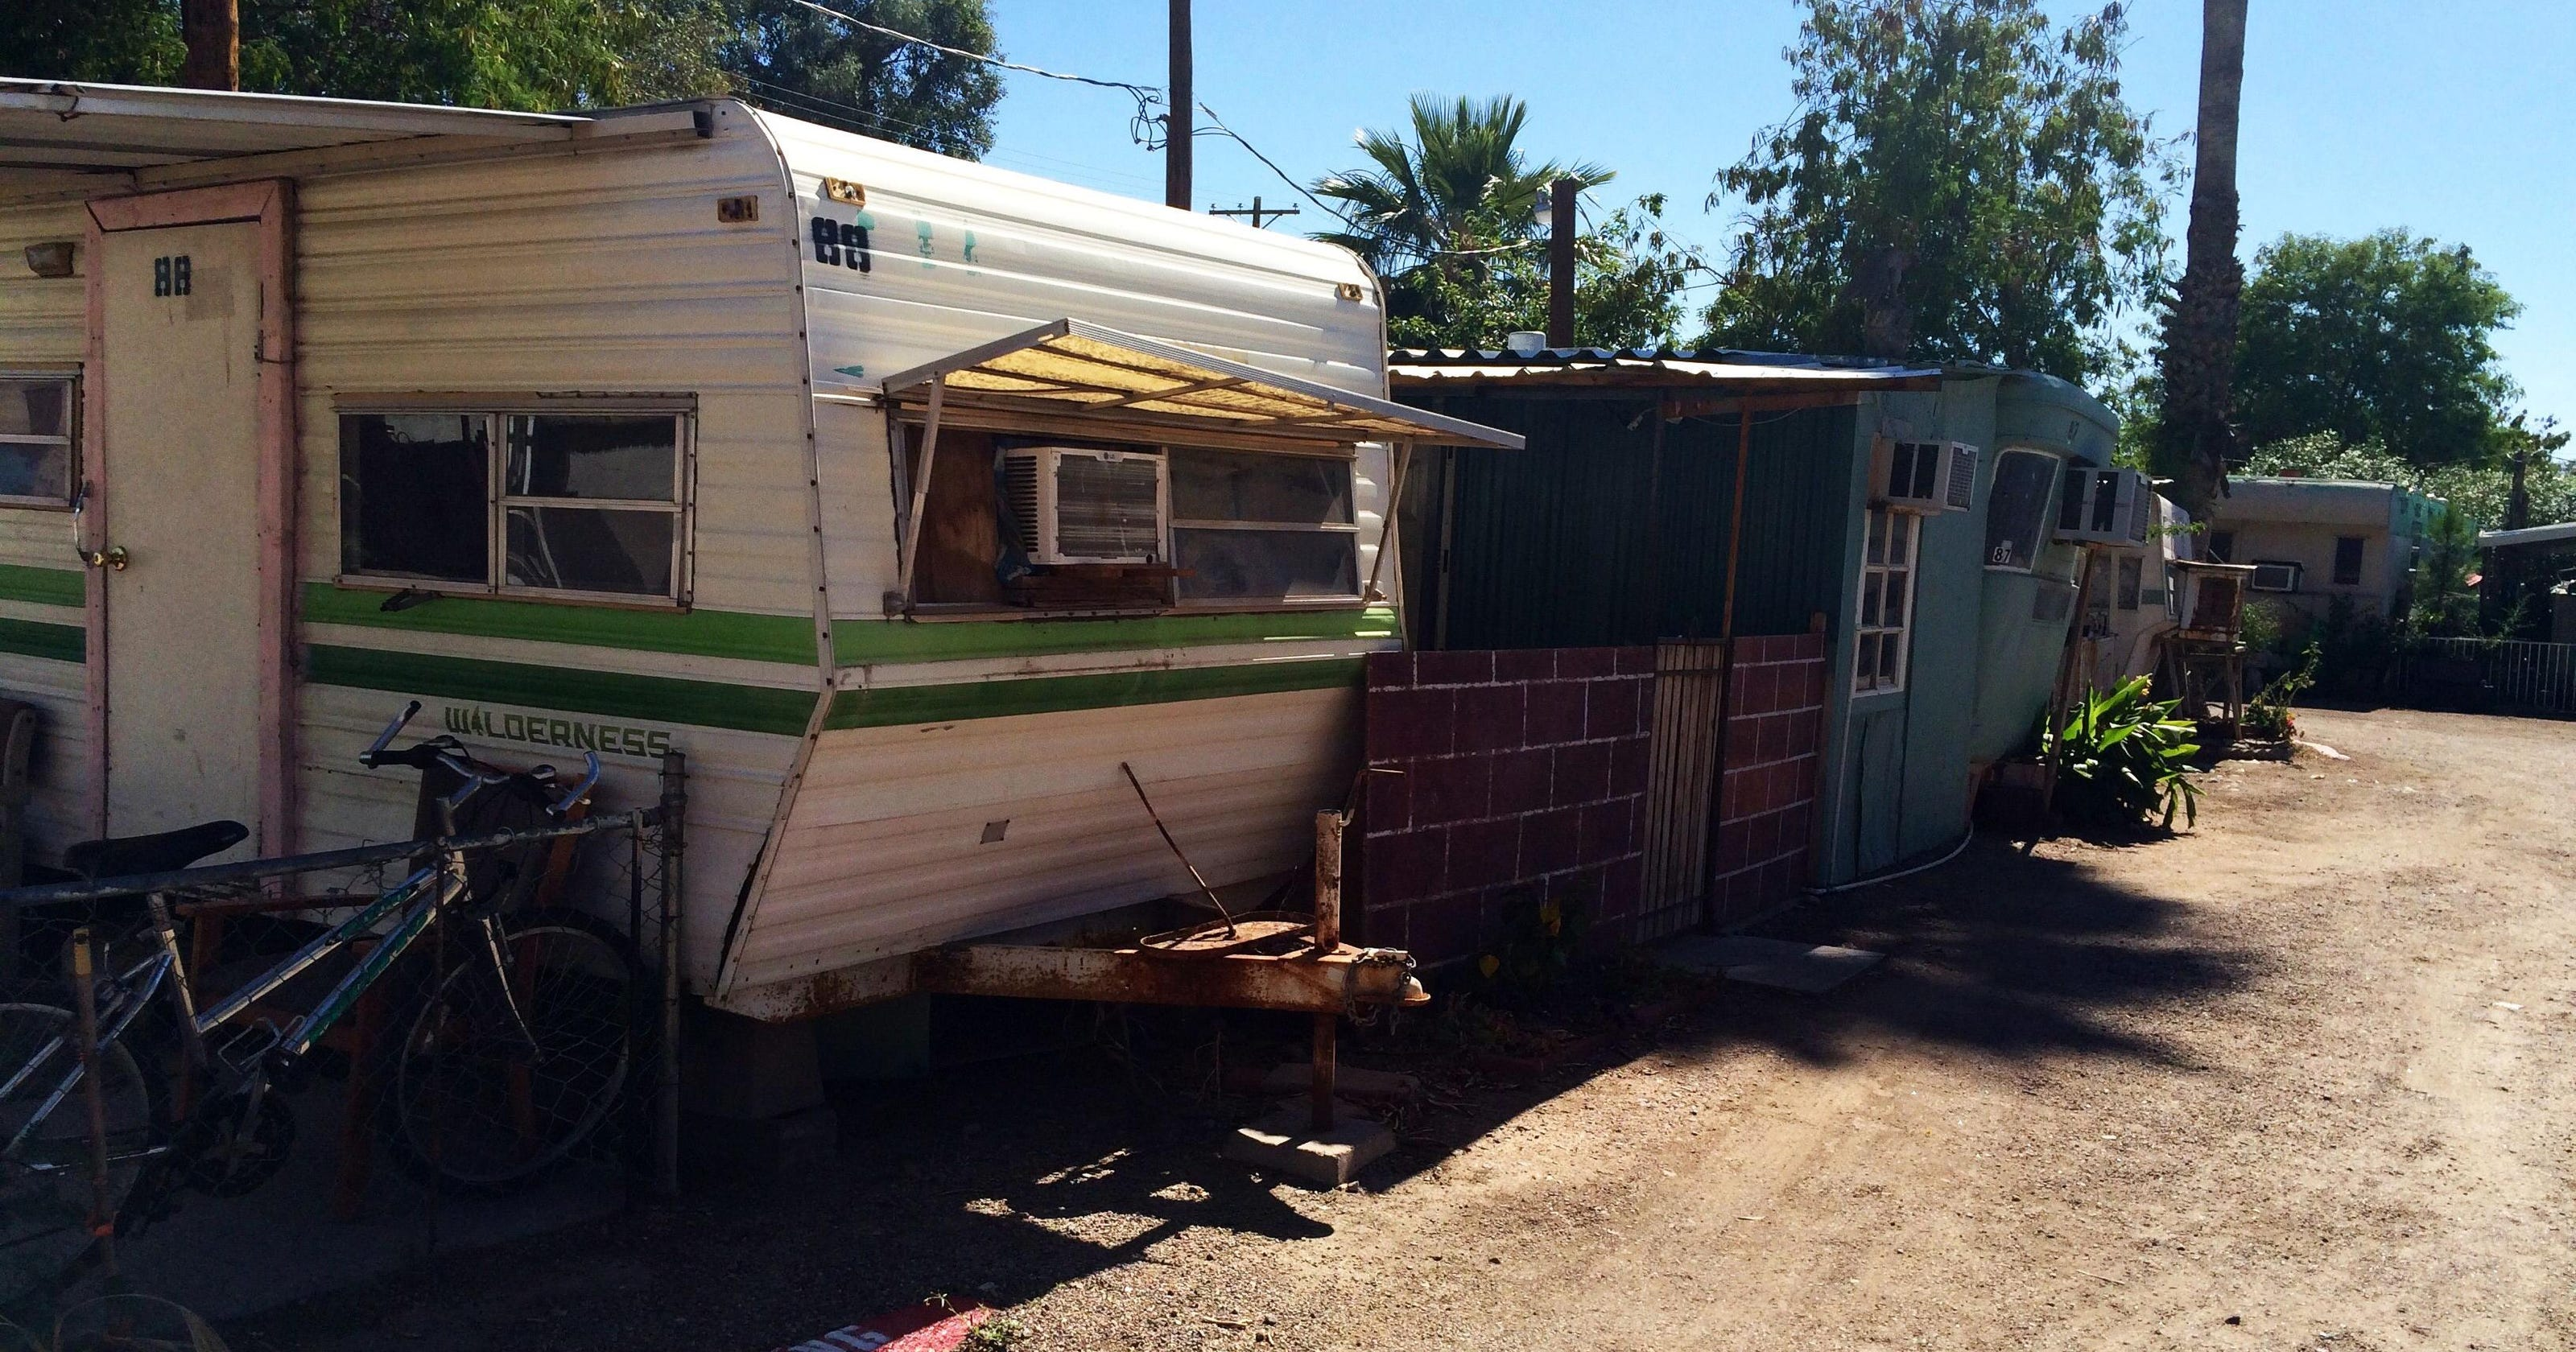 100 families may be out at 'unfit' Mesa mobile-home park